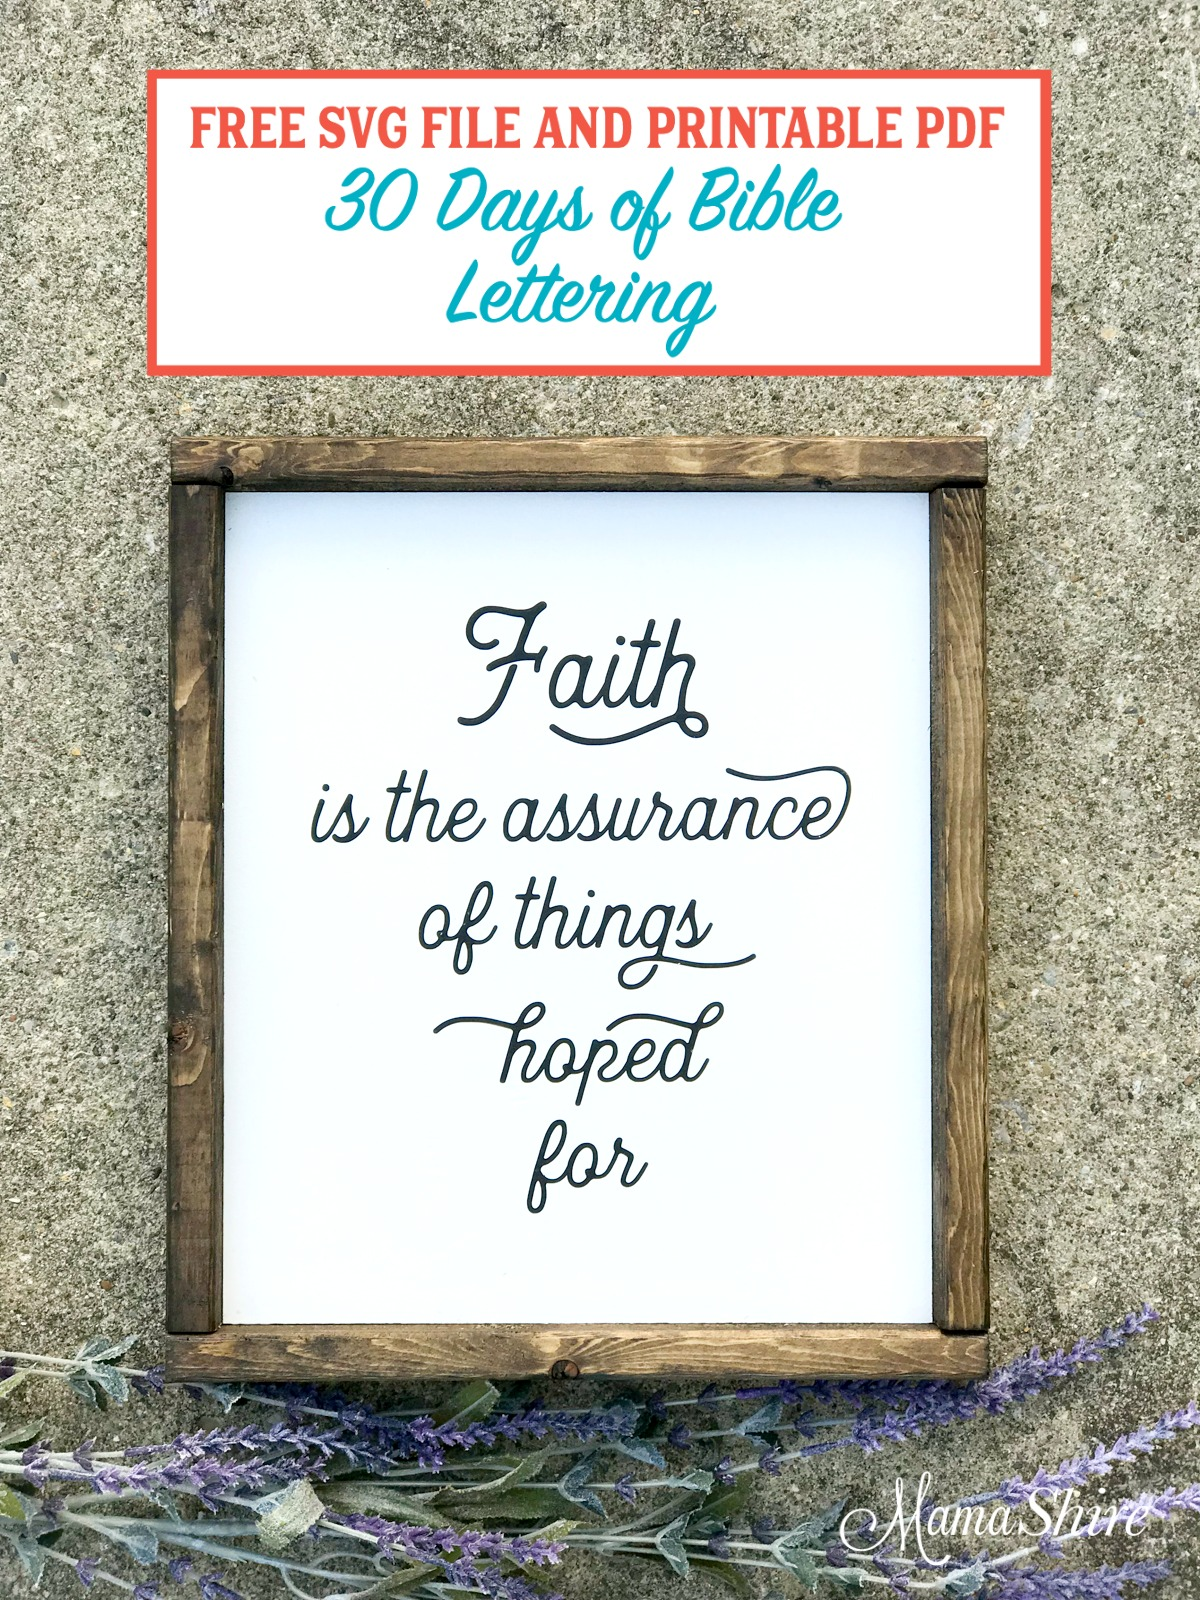 Free SVG & Printable PDF of Faith is the assurance.